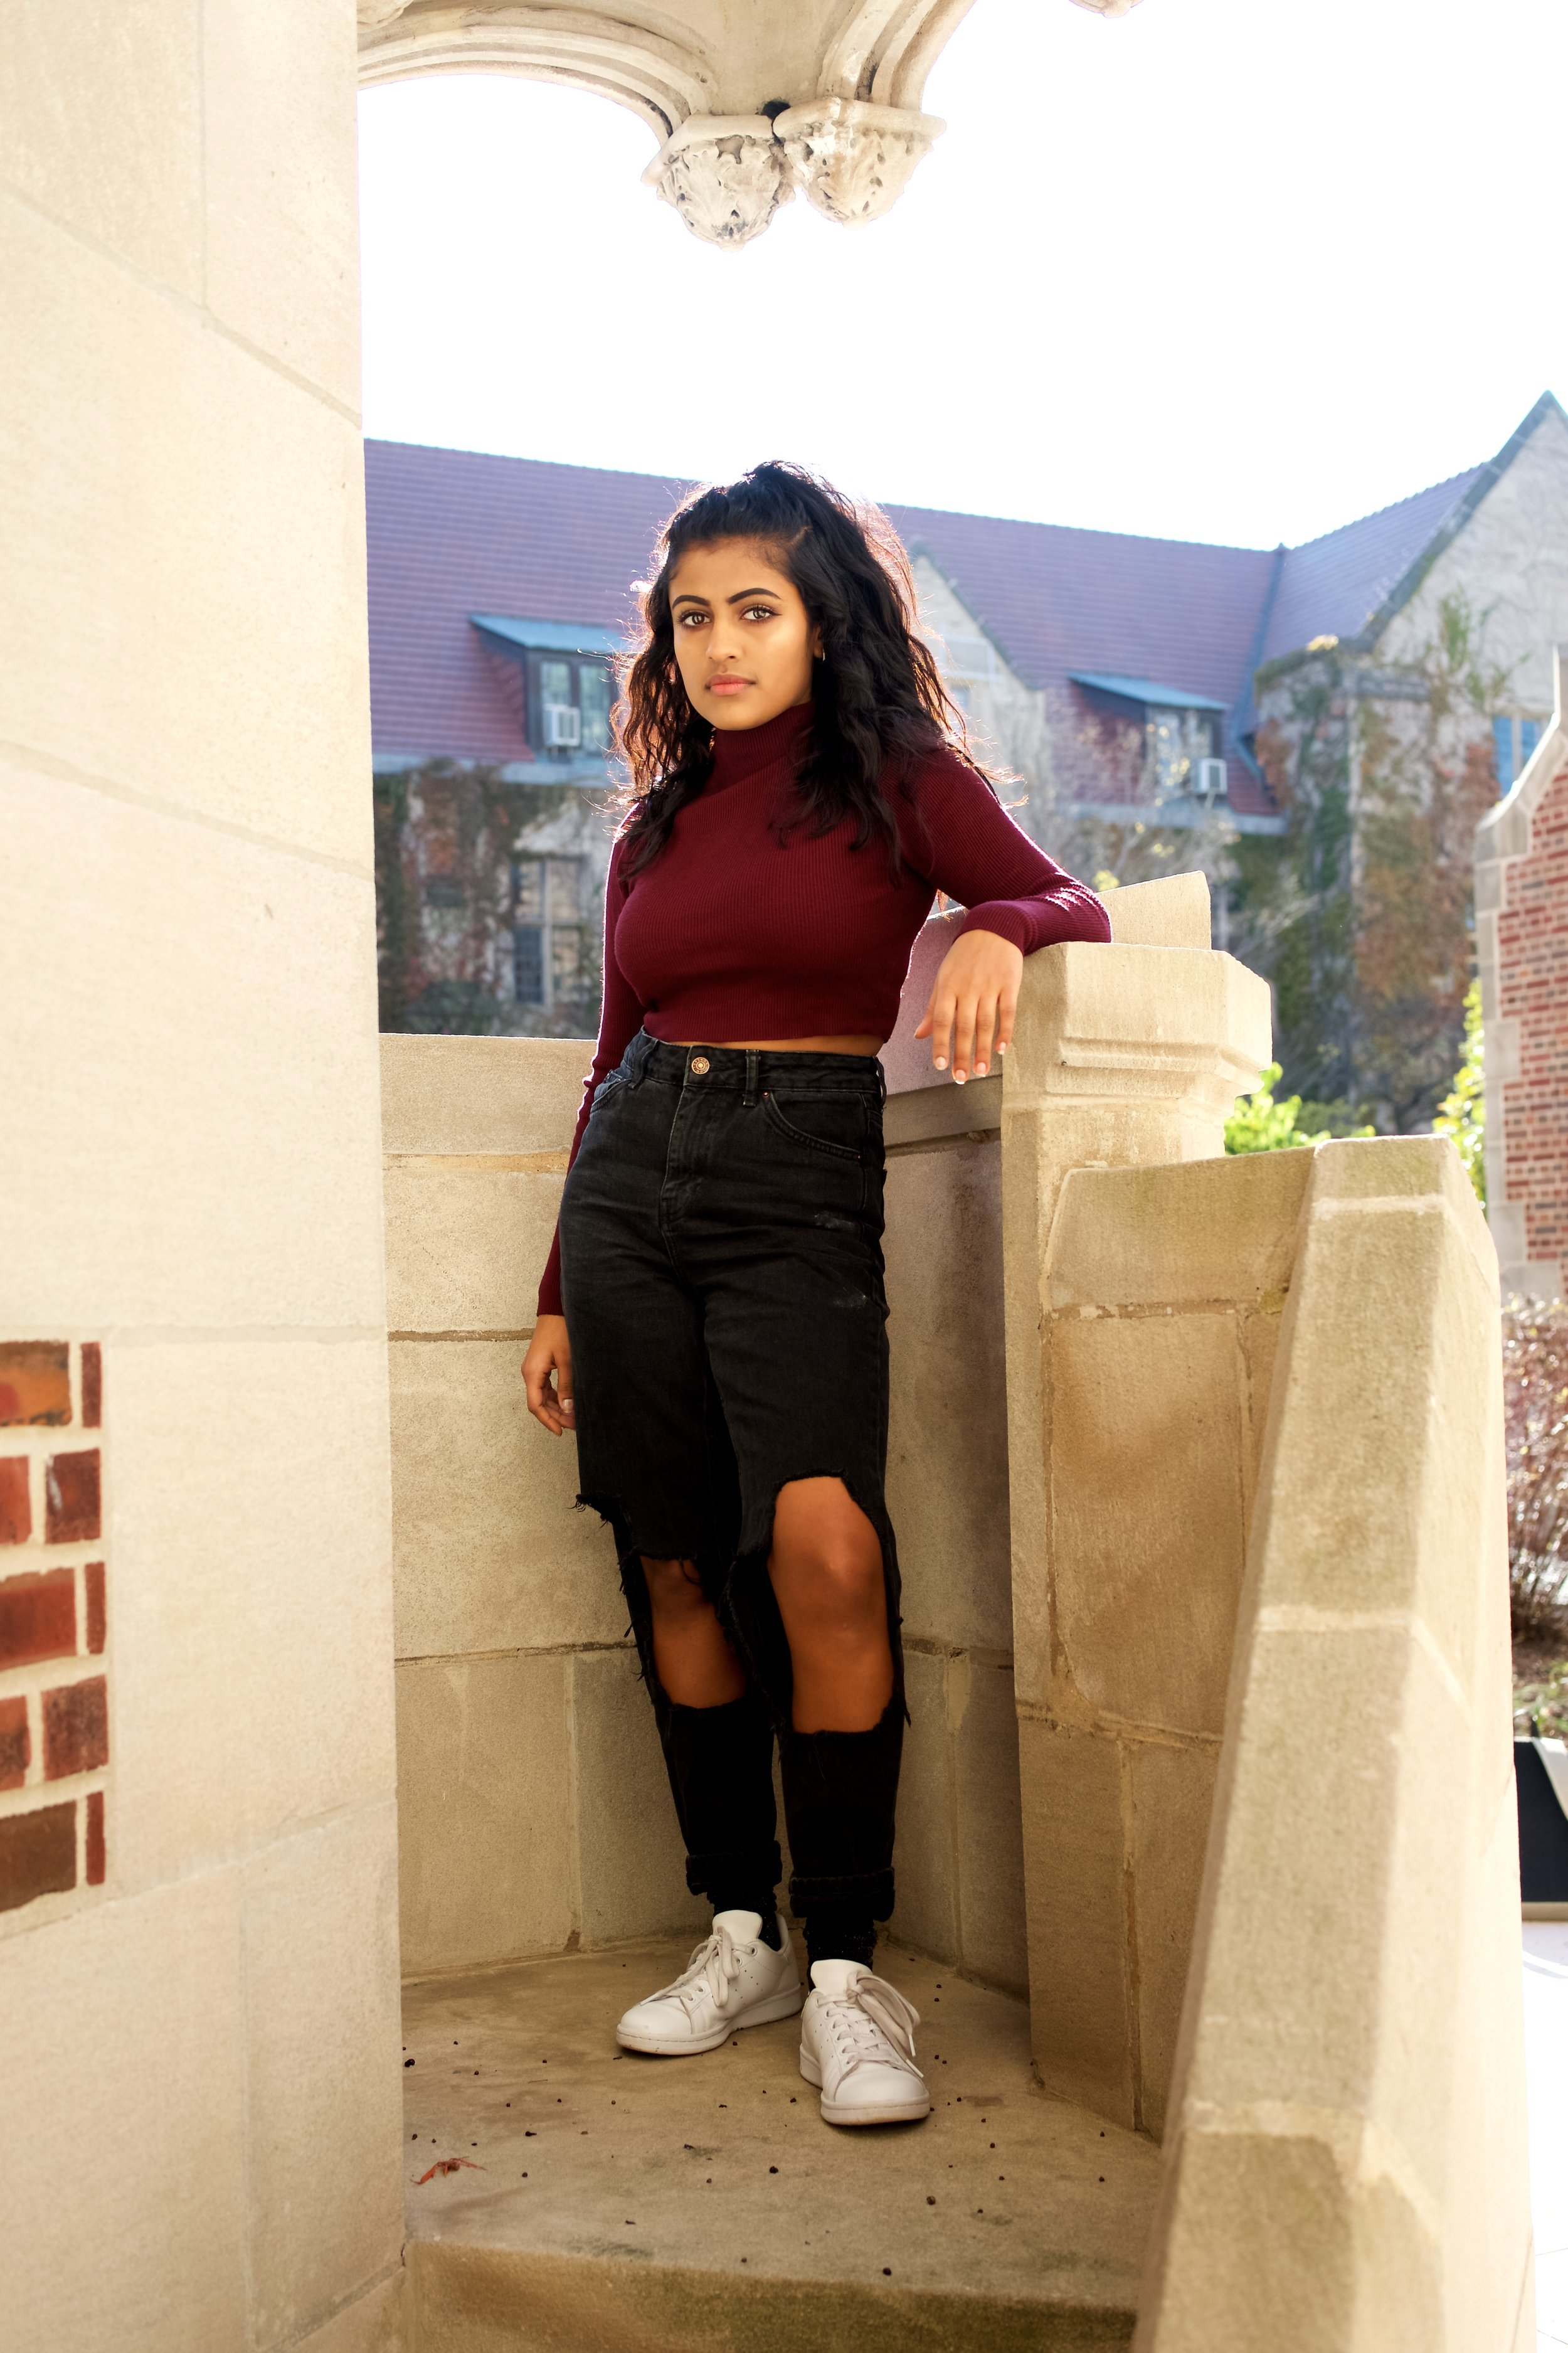 In this outfit, Yamini is wearing: a cropped turtleneck from UNIF, jeans from Topshop, and Adidas Stan Smiths.